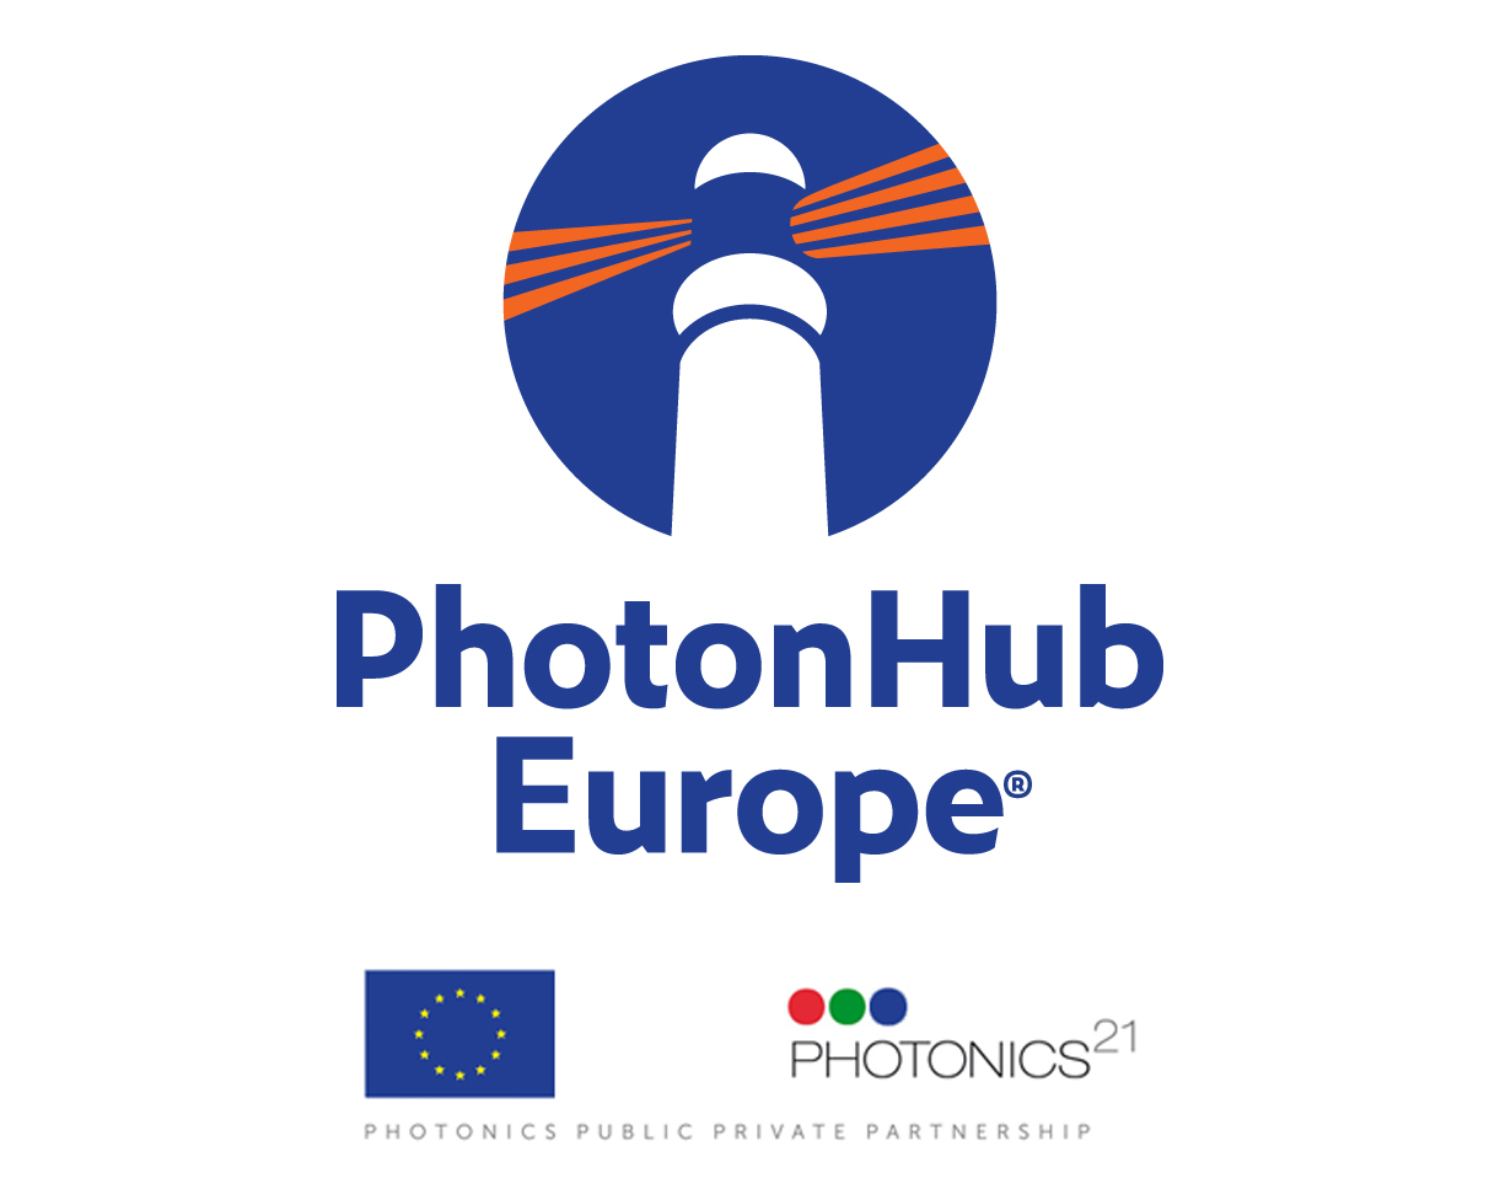 PhotonHub